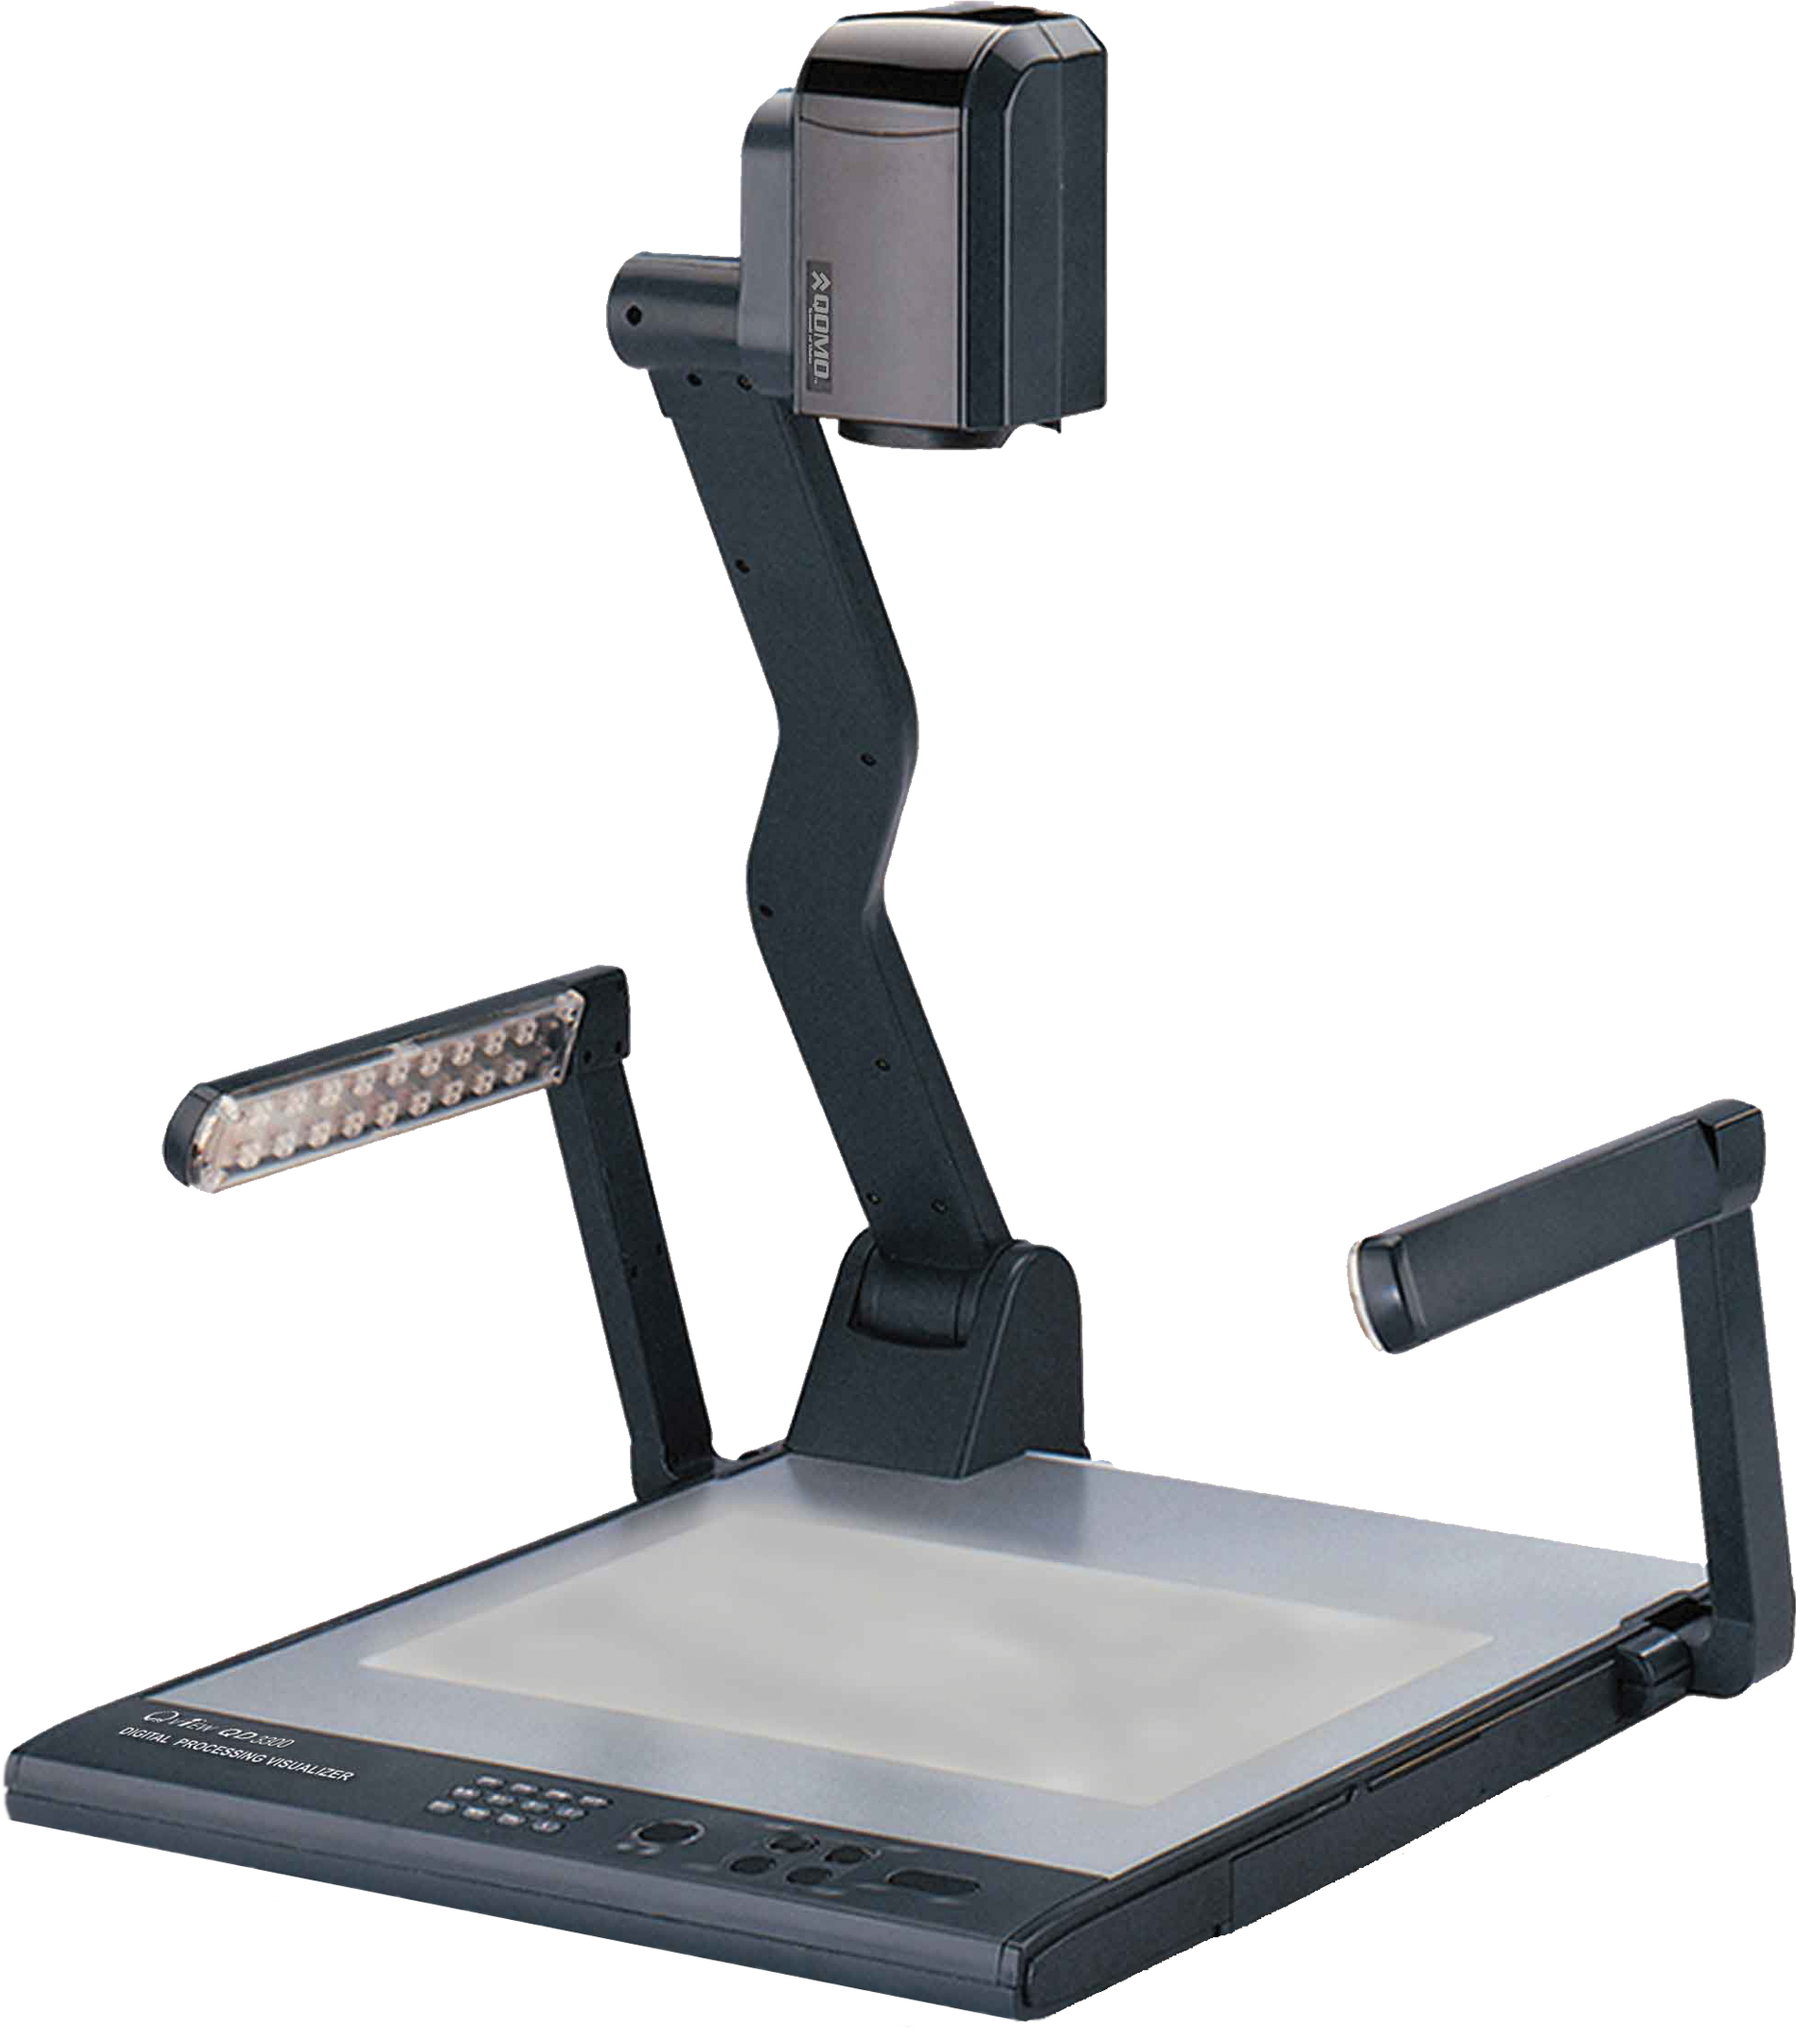 QD3300 Document Camera.